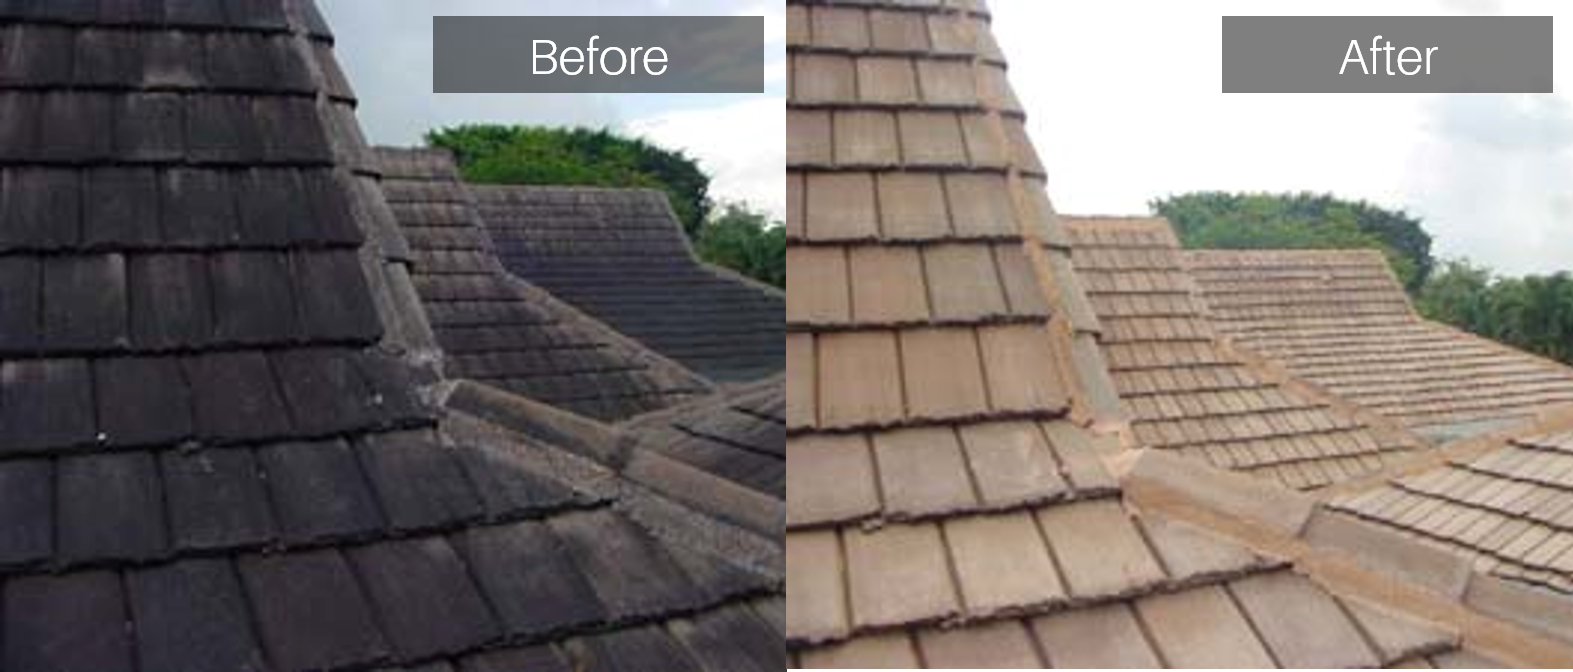 Shingle_Roof_Bef_Aft.png